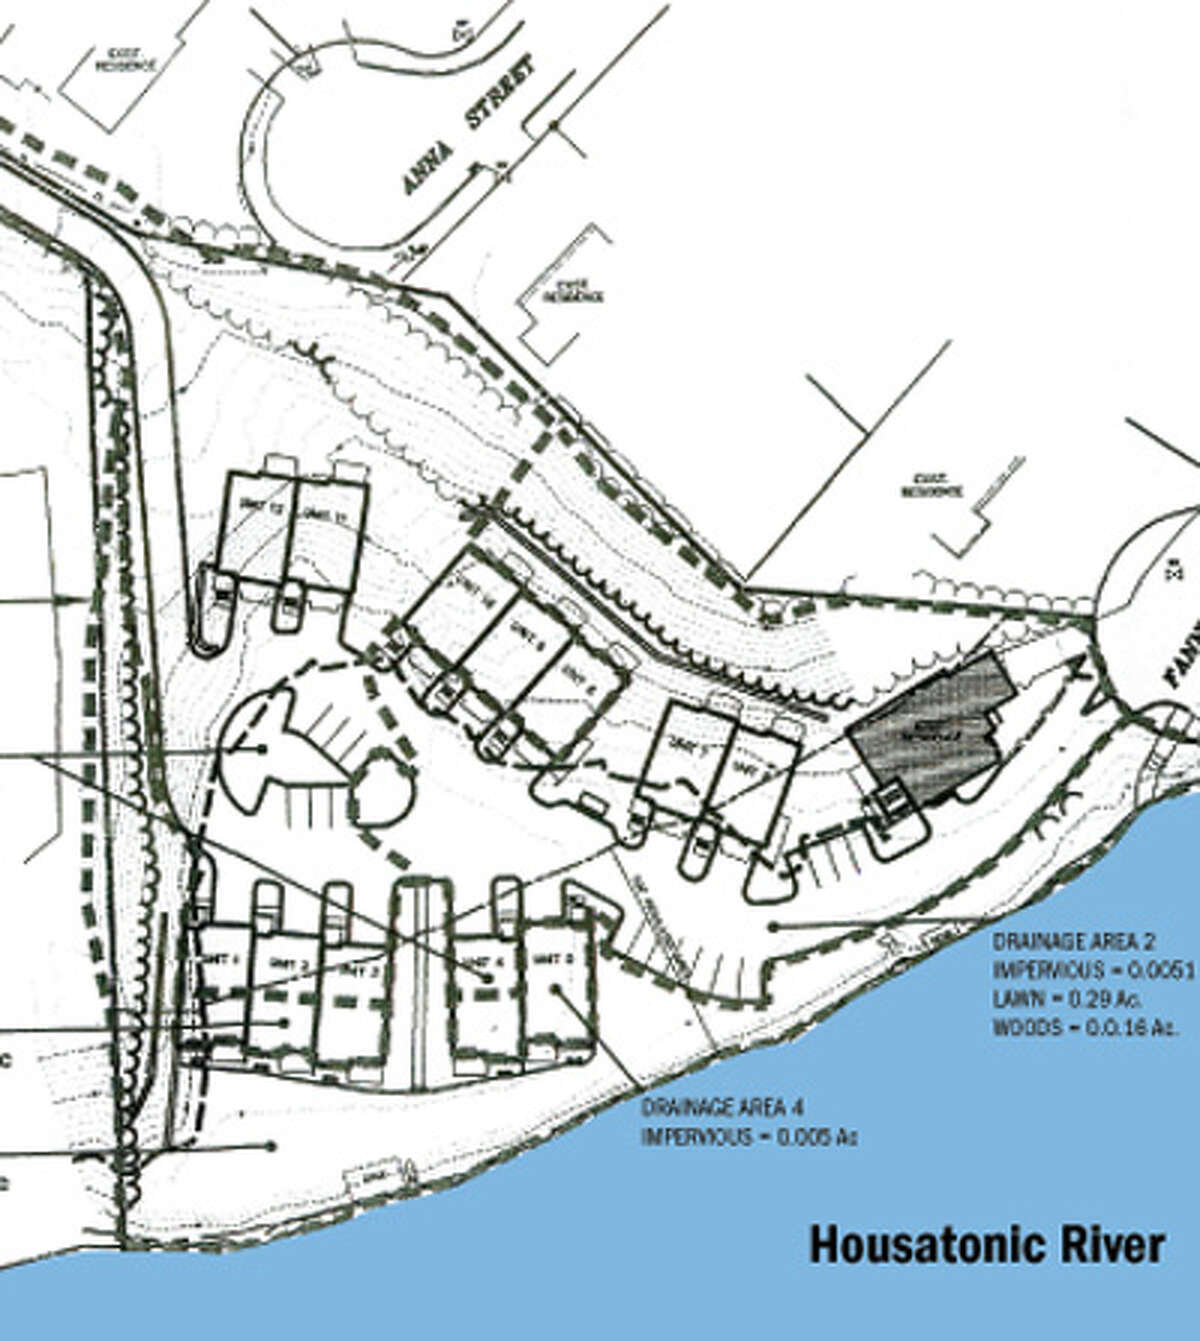 Torrington-based Water's Edge of Shelton LLC wants to build the project on 3.1 acres next to the Housatonic River.